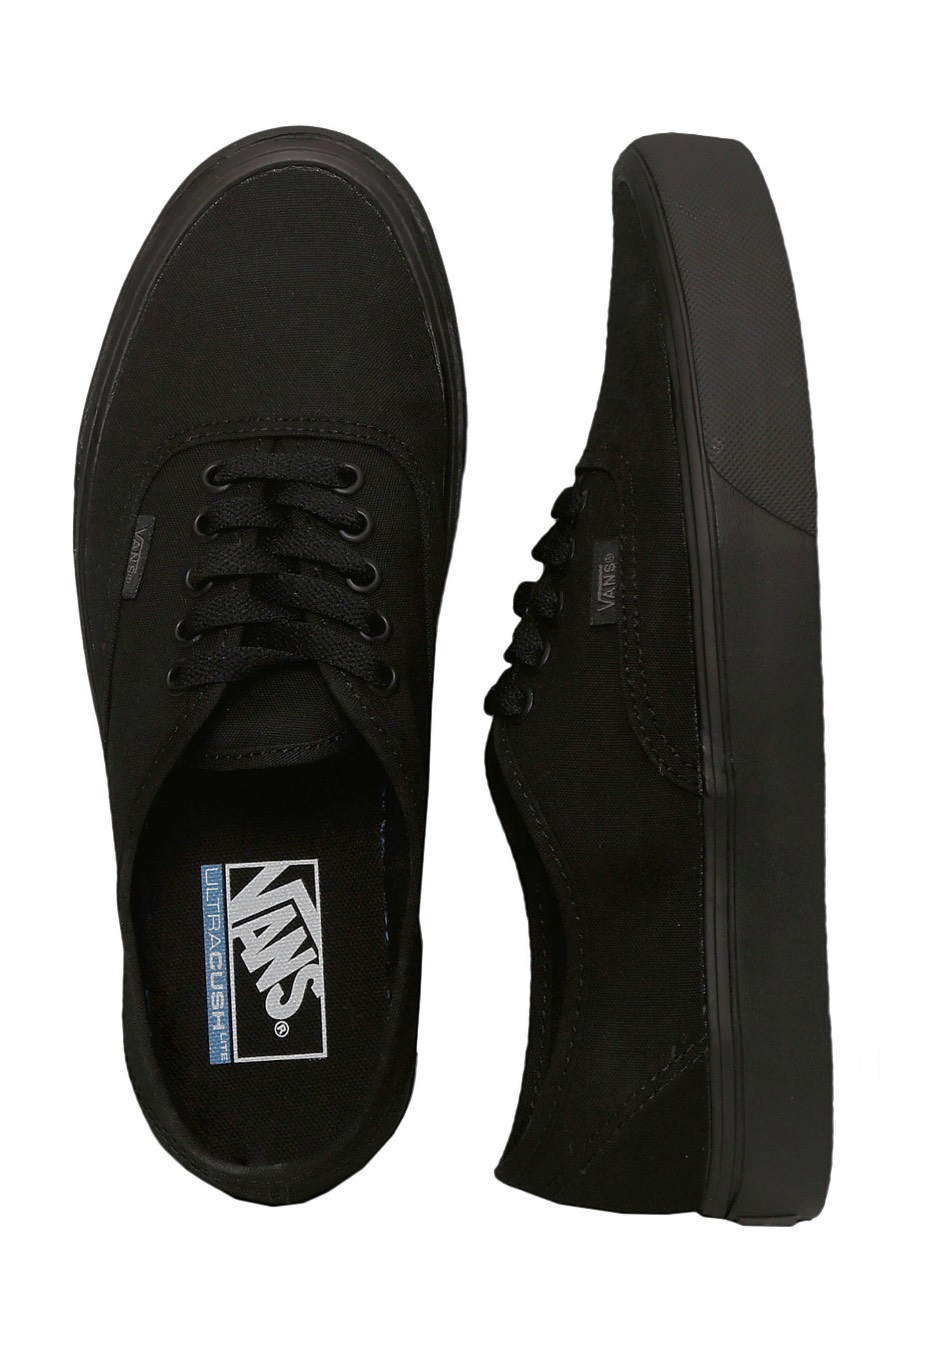 d08d40cd5e Vans - Authentic Lite Canvas Black Black - Shoes - Impericon.com UK